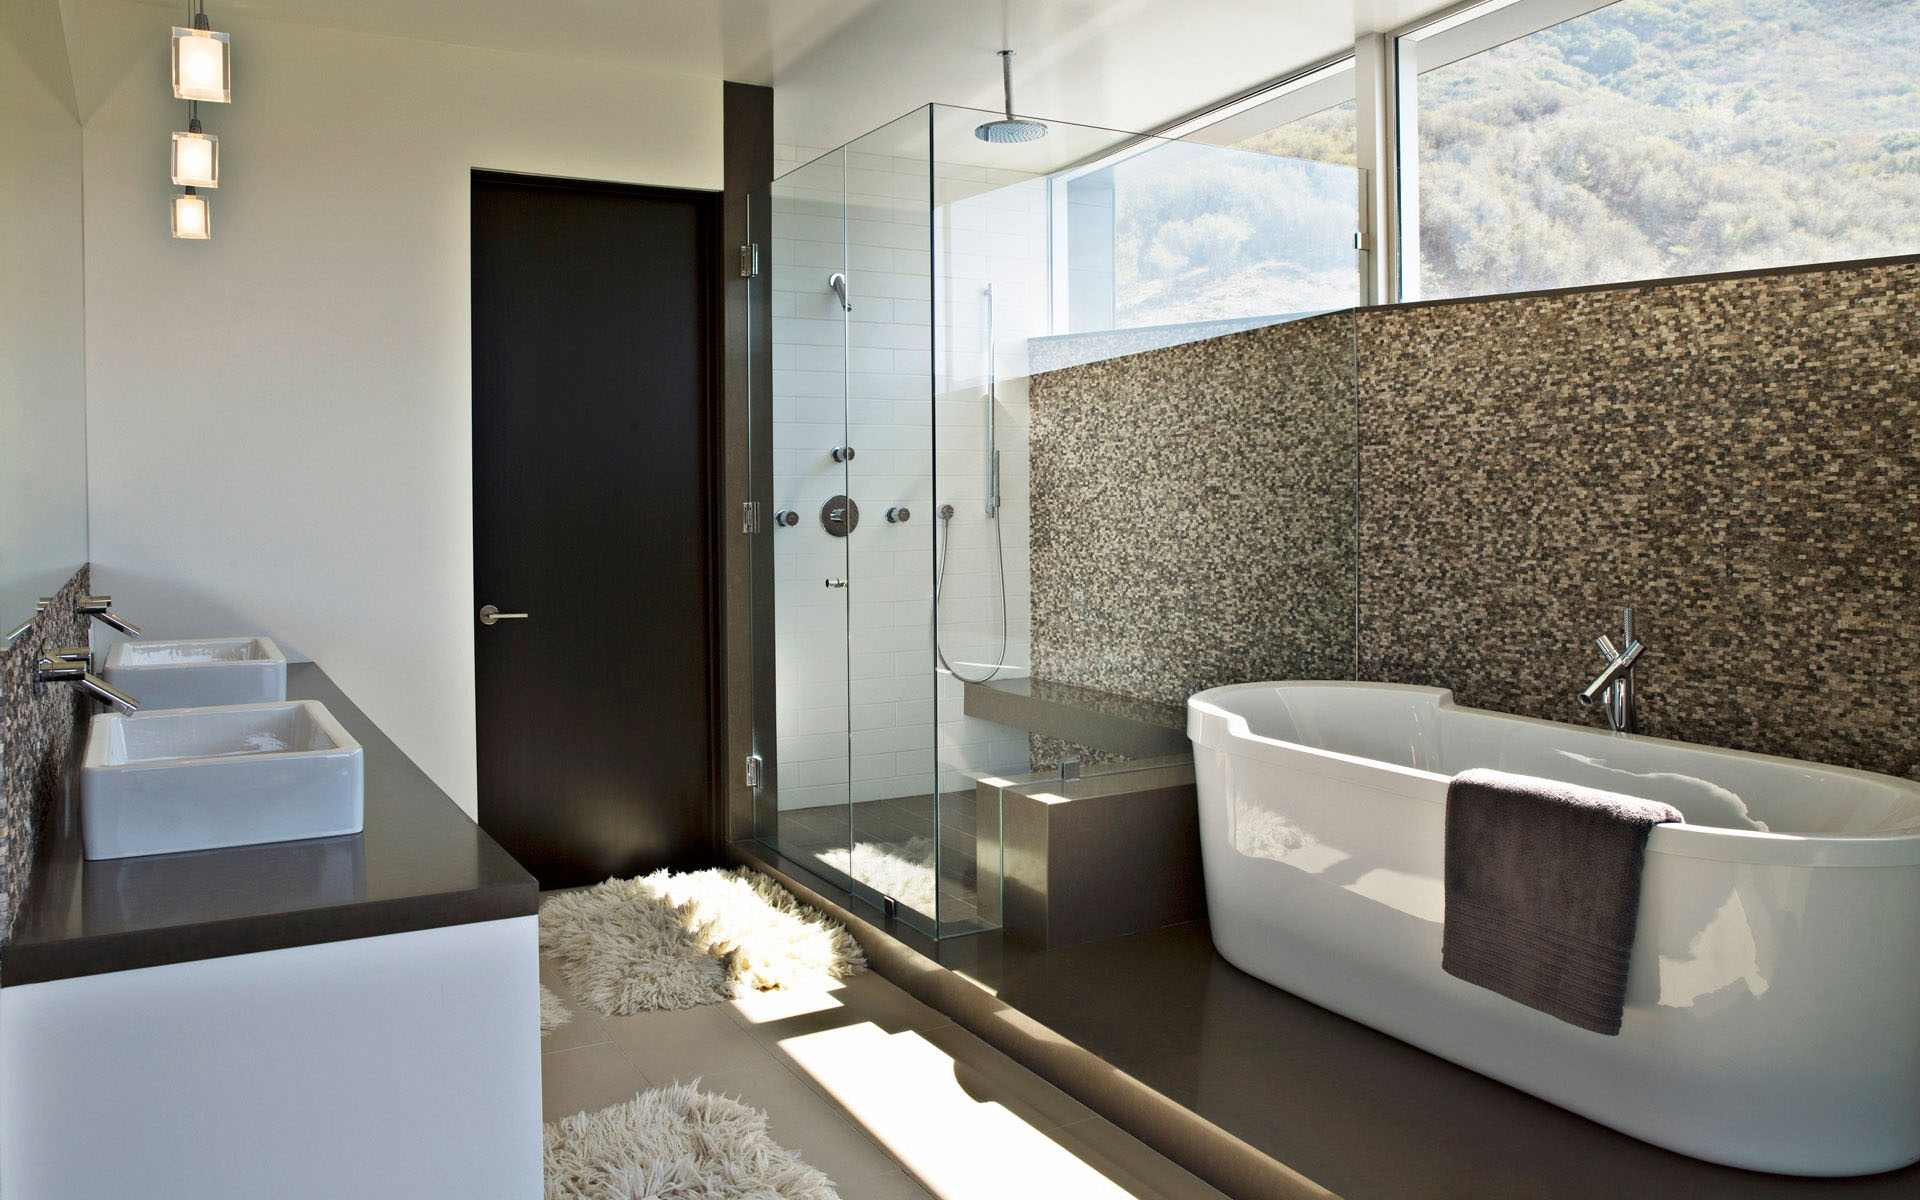 North-VA-Modern-Bathroom-Renovation-And-Home-Addition-Example-Sterling-Construction-and-Design-Company-North-VA